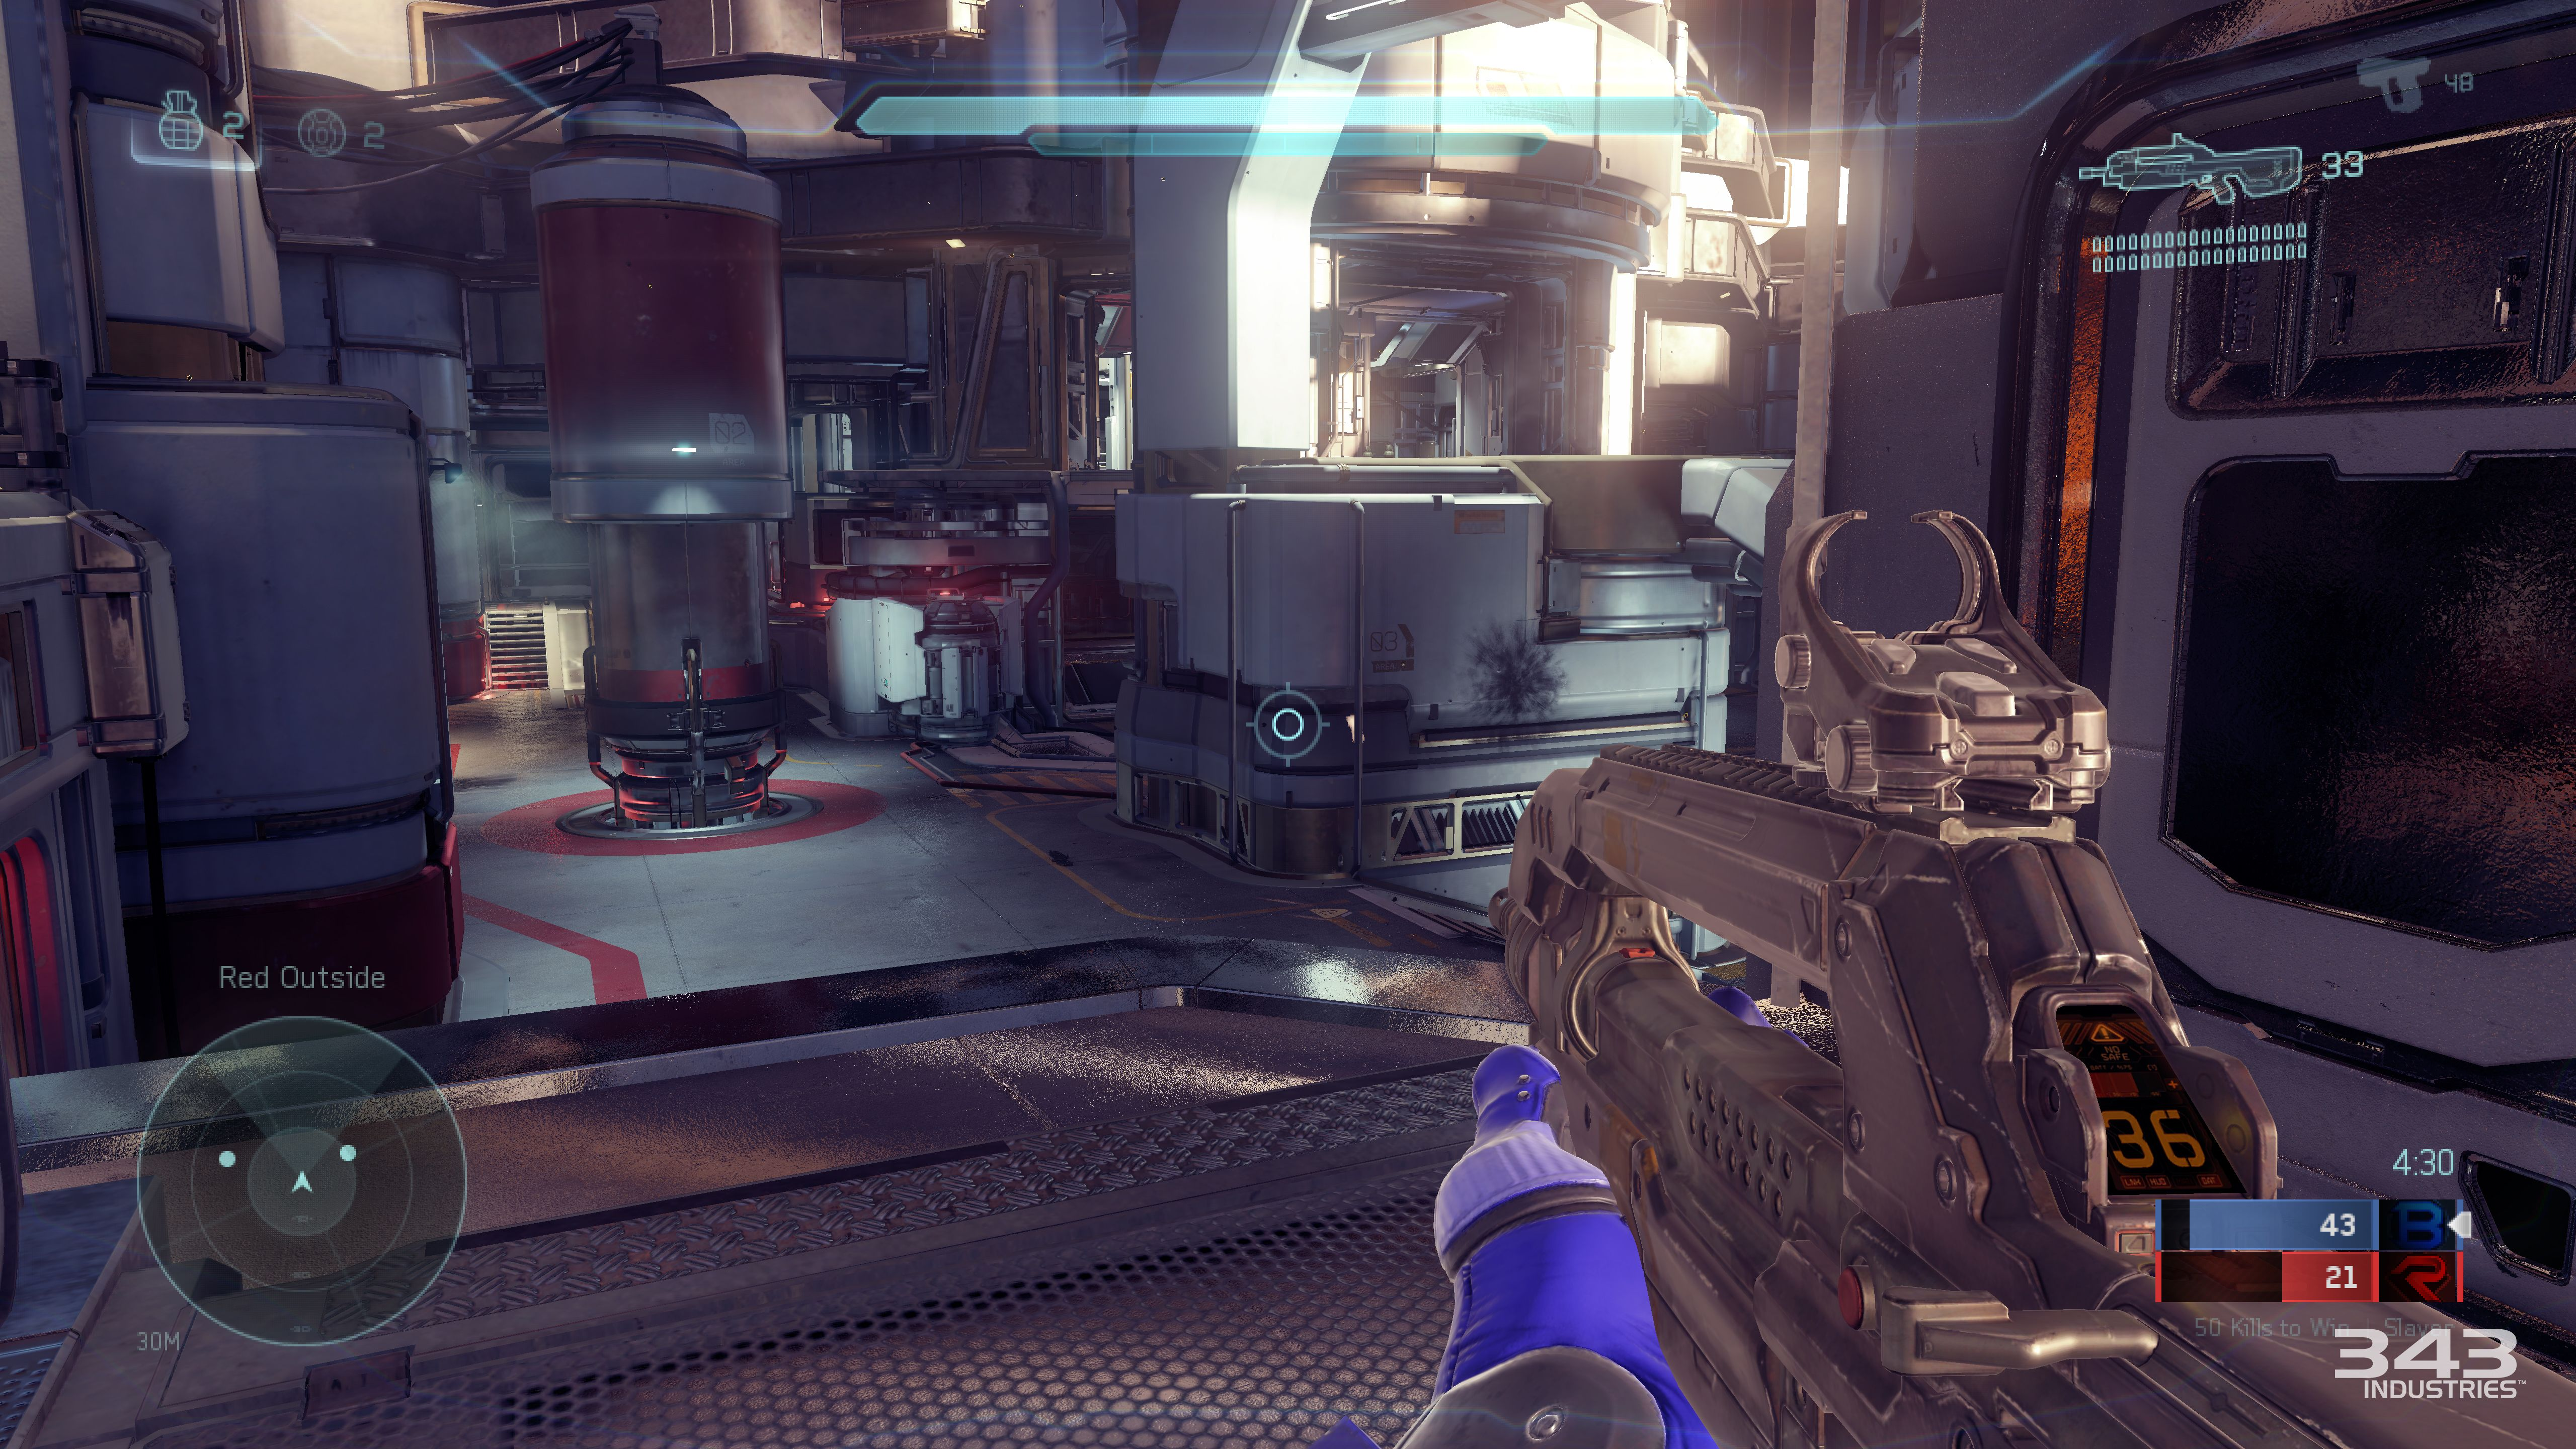 Halo 5: Guardians' returns to what made 'Halo' great | Halo | Halo 5